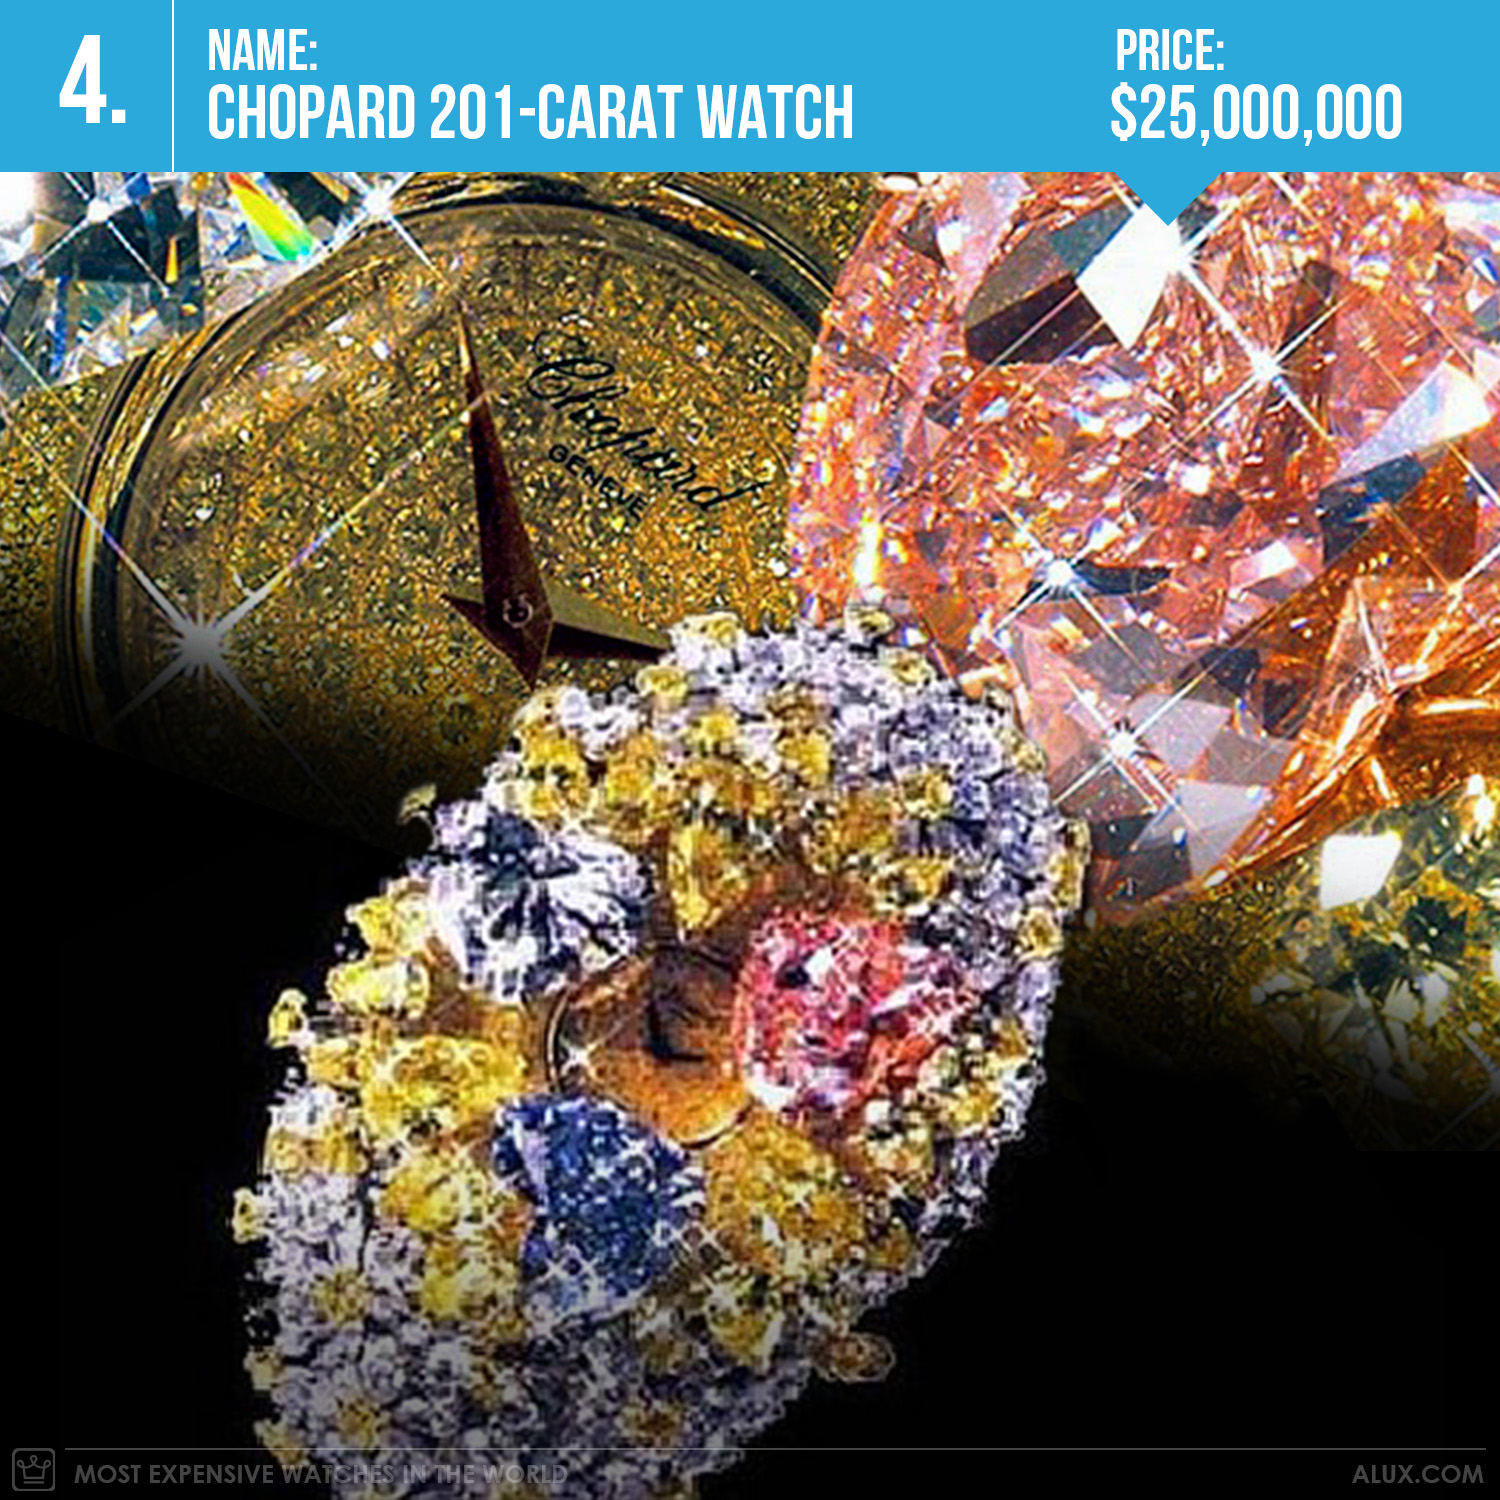 most expensive watches in the world CHOPARD 201-CARAT